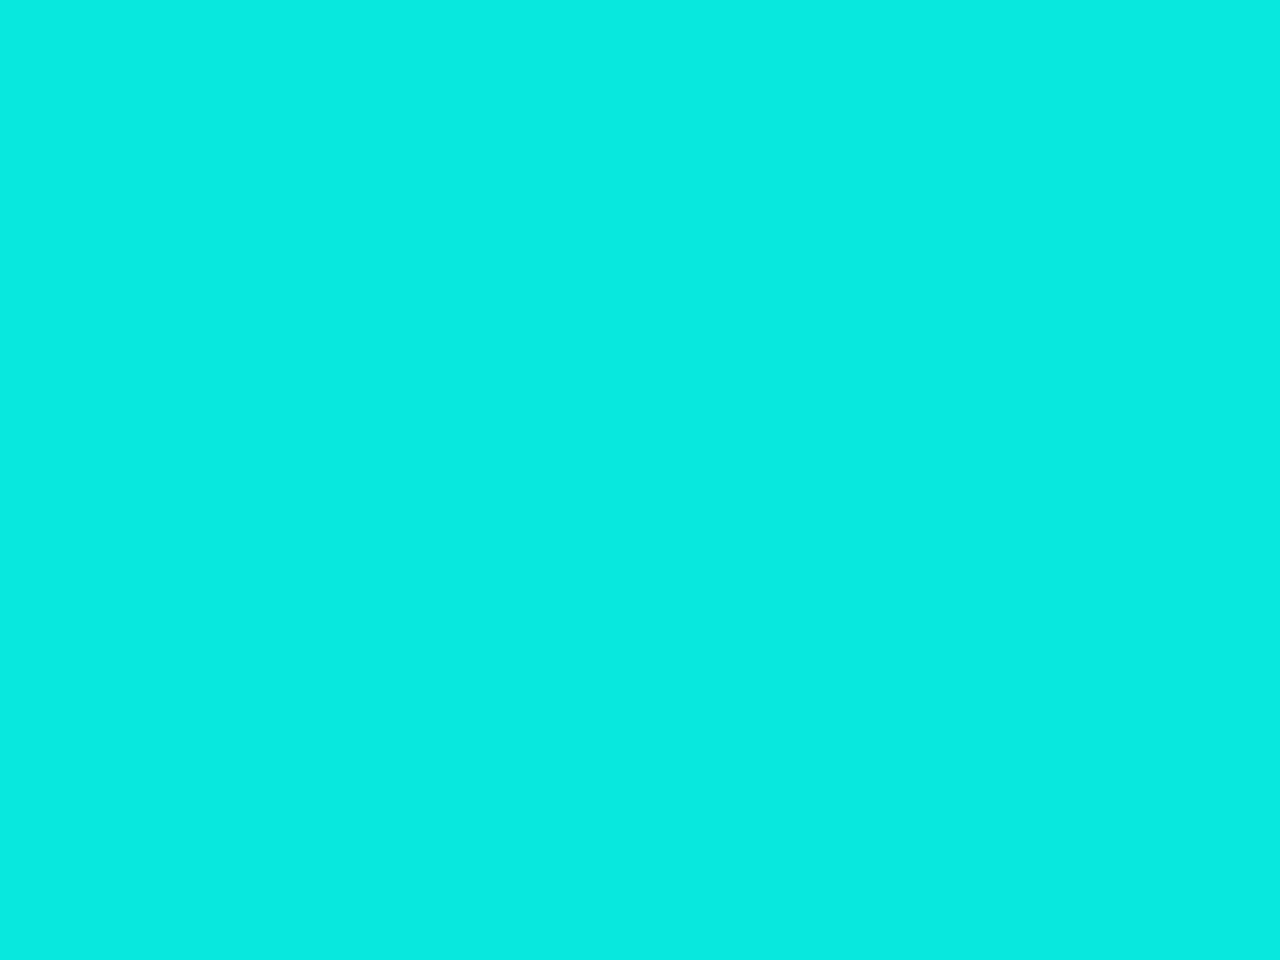 1280x960 Bright Turquoise Solid Color Background